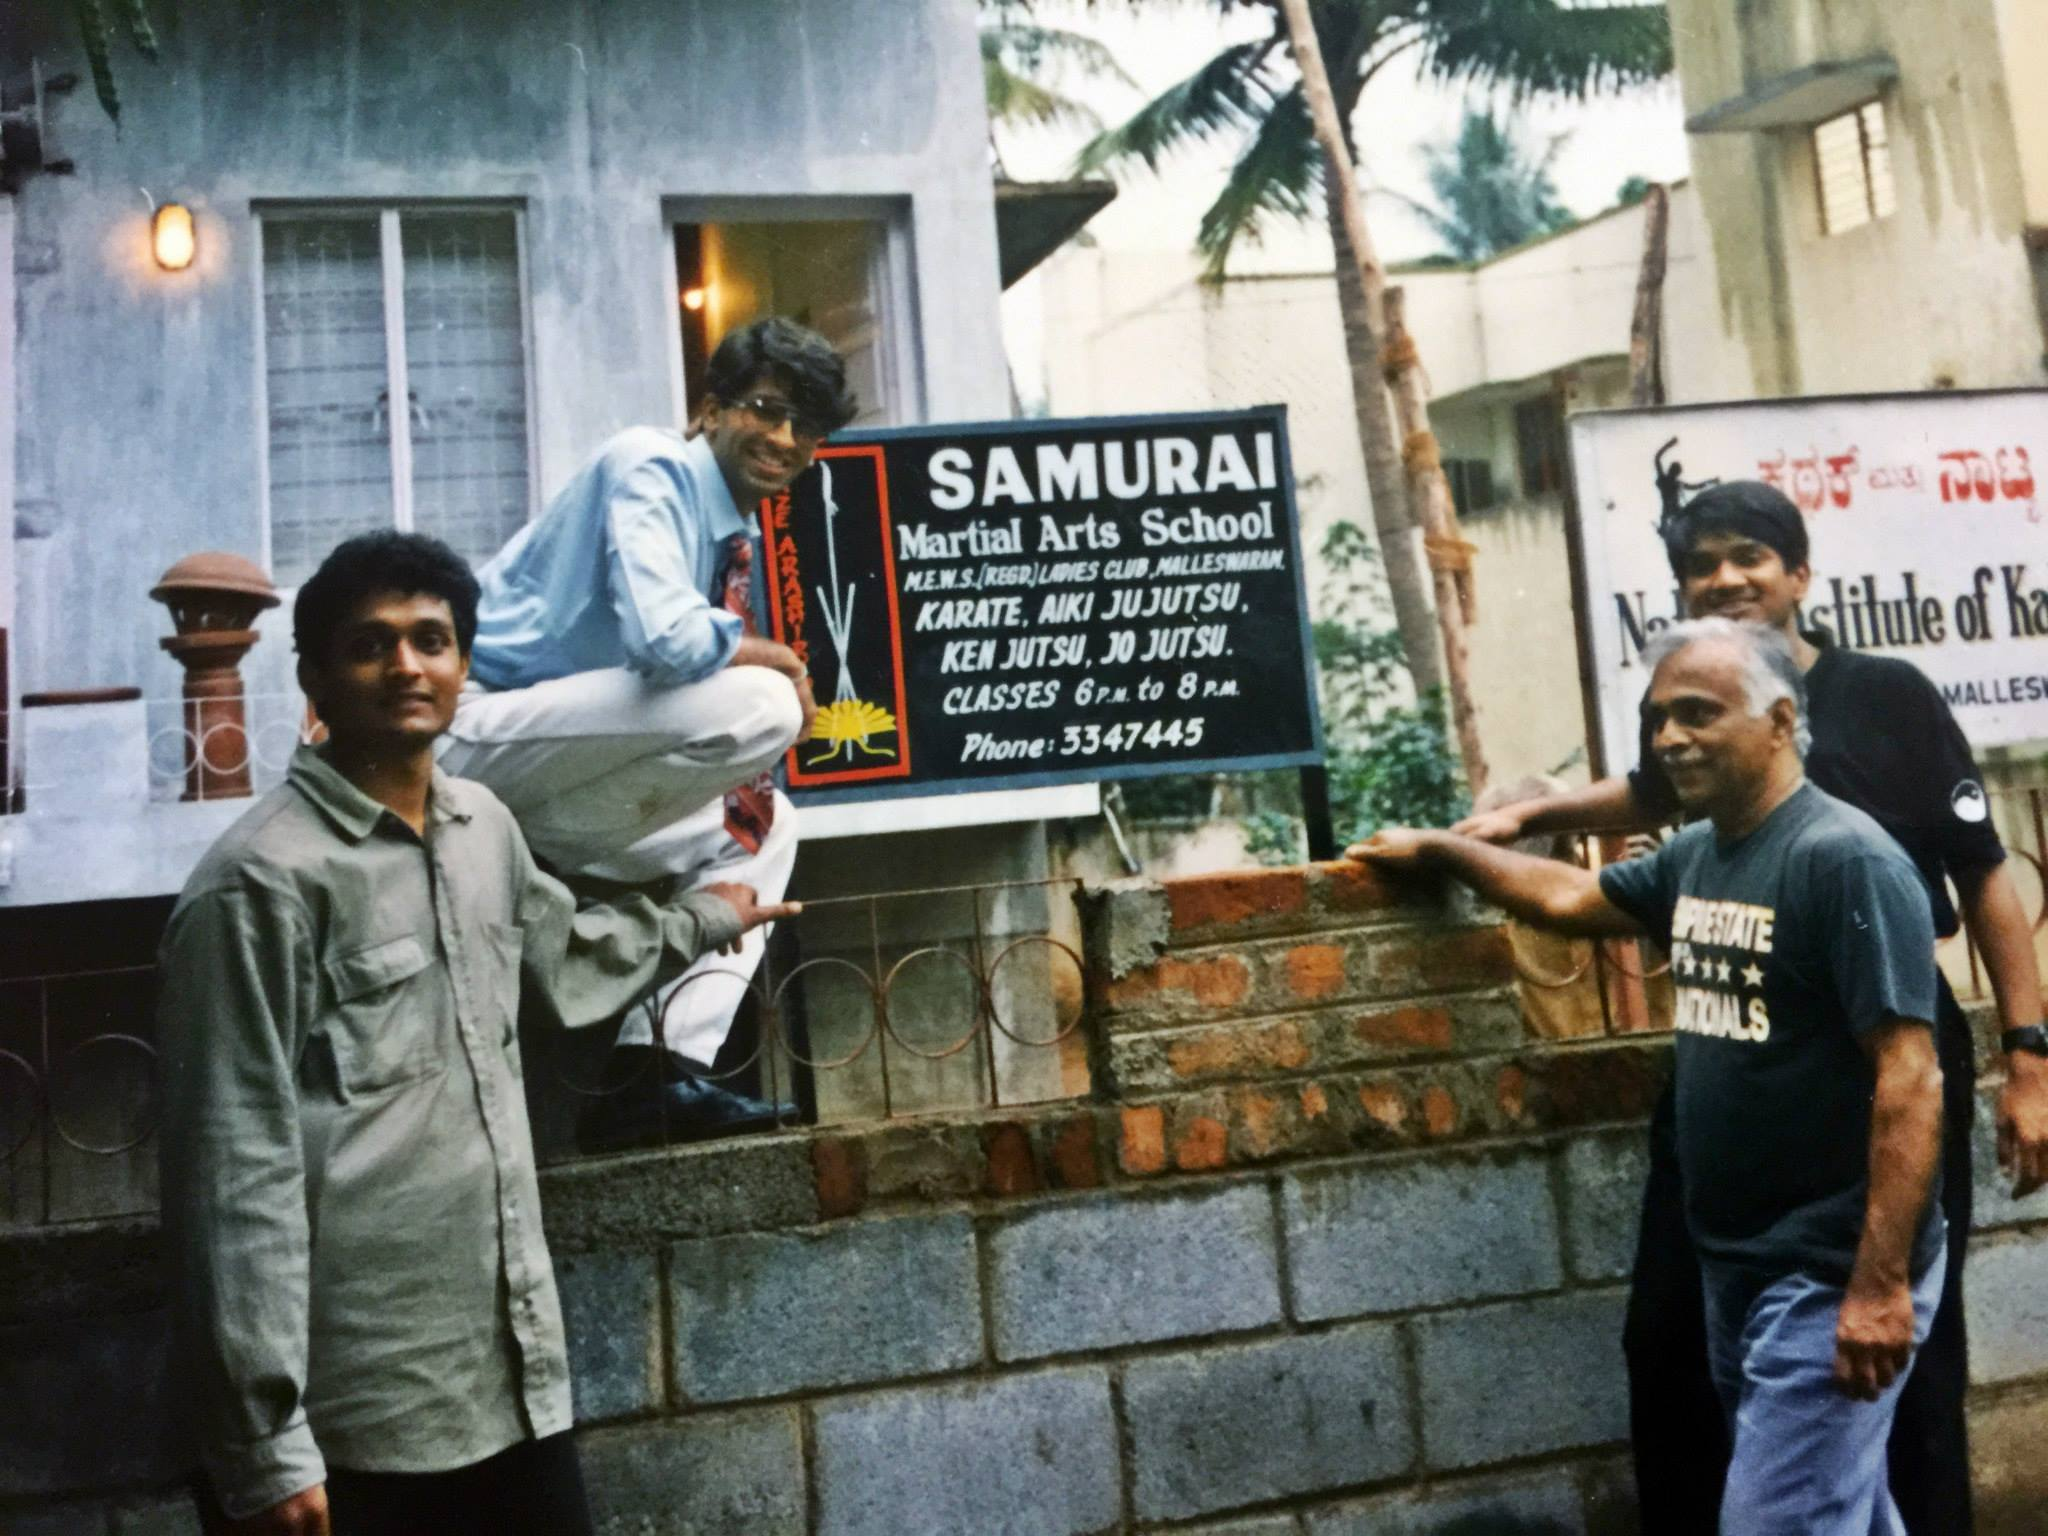 Sastri Sensei (second from right) inaugurating the dojo in Bangalore, India in the early 1990's. Lunia Sensei (second from left) was his first Oku Iri.